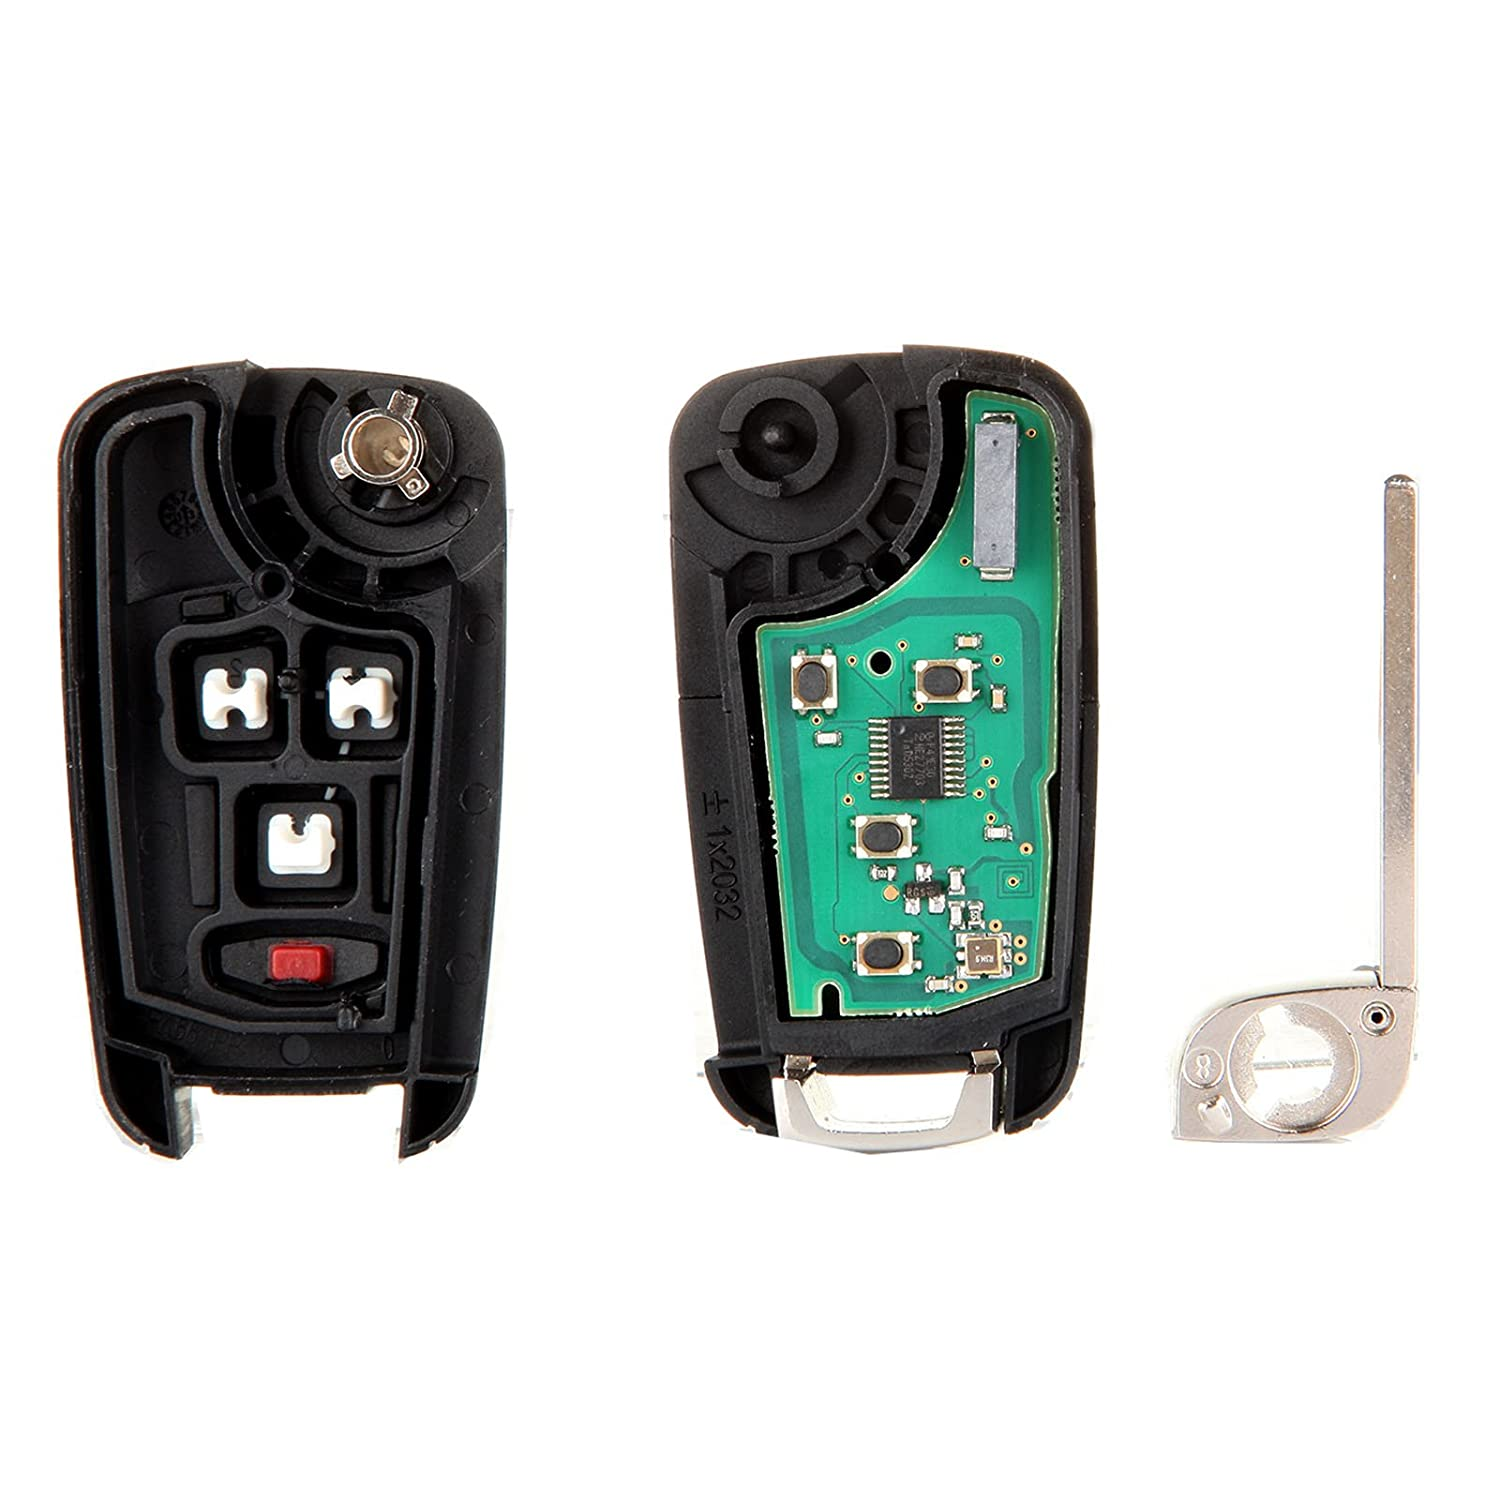 2X New Uncut Replacement Keyless Entry Car Remote Flip Key Fob 4-Button CHEVROLET Camaro Cruze Equinox Malibu OHT01060512 SCITOO Compatible fit for Keyless Entry